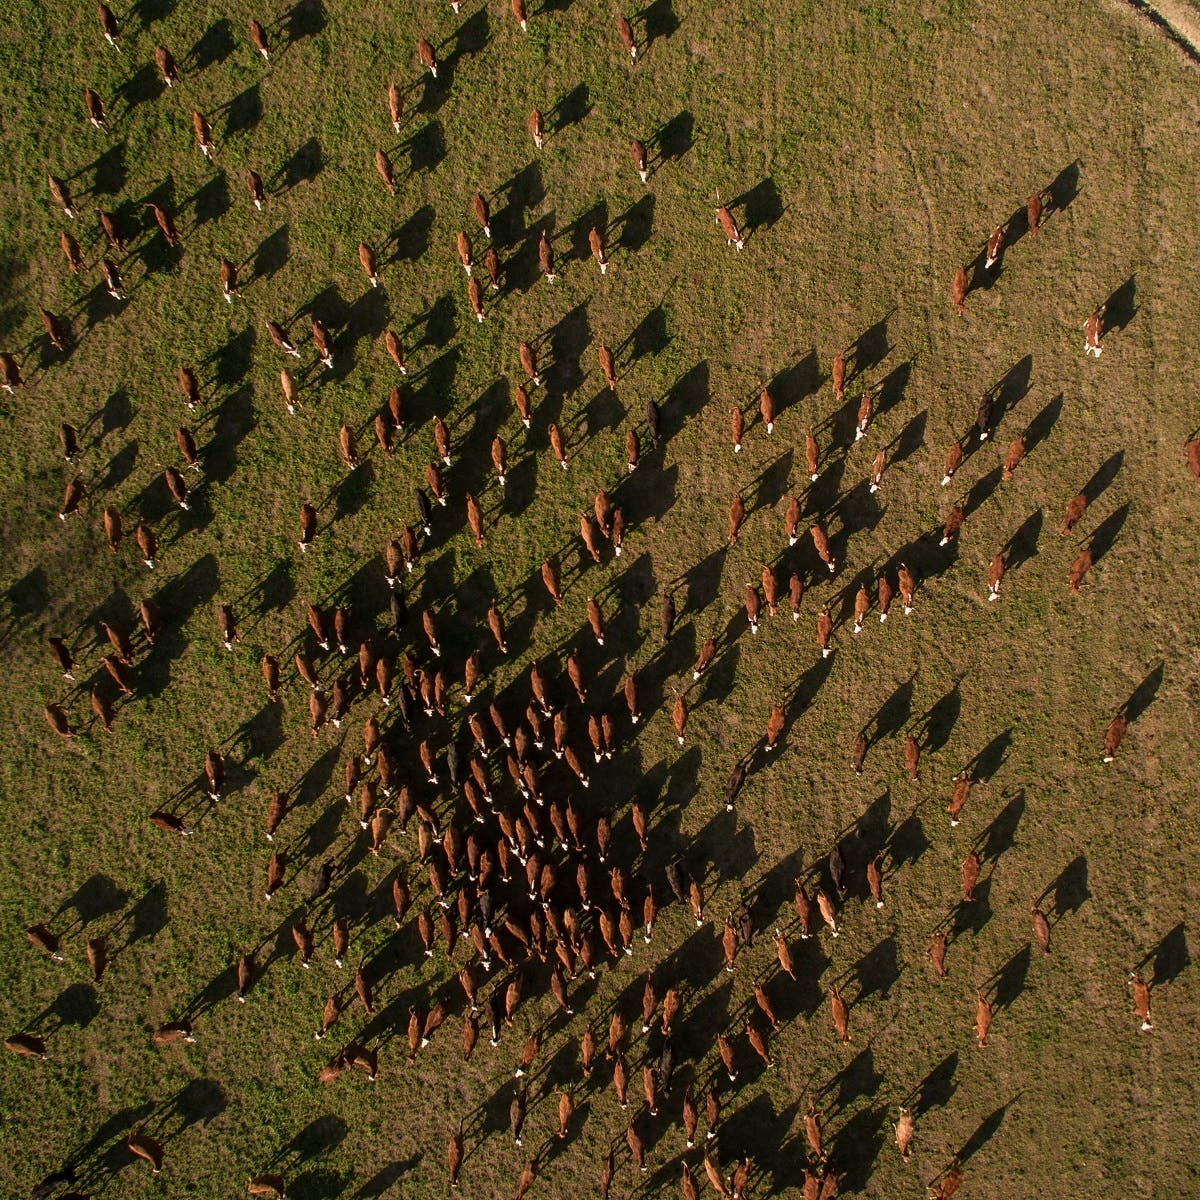 A drone image of an enormous cattle ranch, with not a tree in sight. Animal agriculture is the leading cause of deforestation.